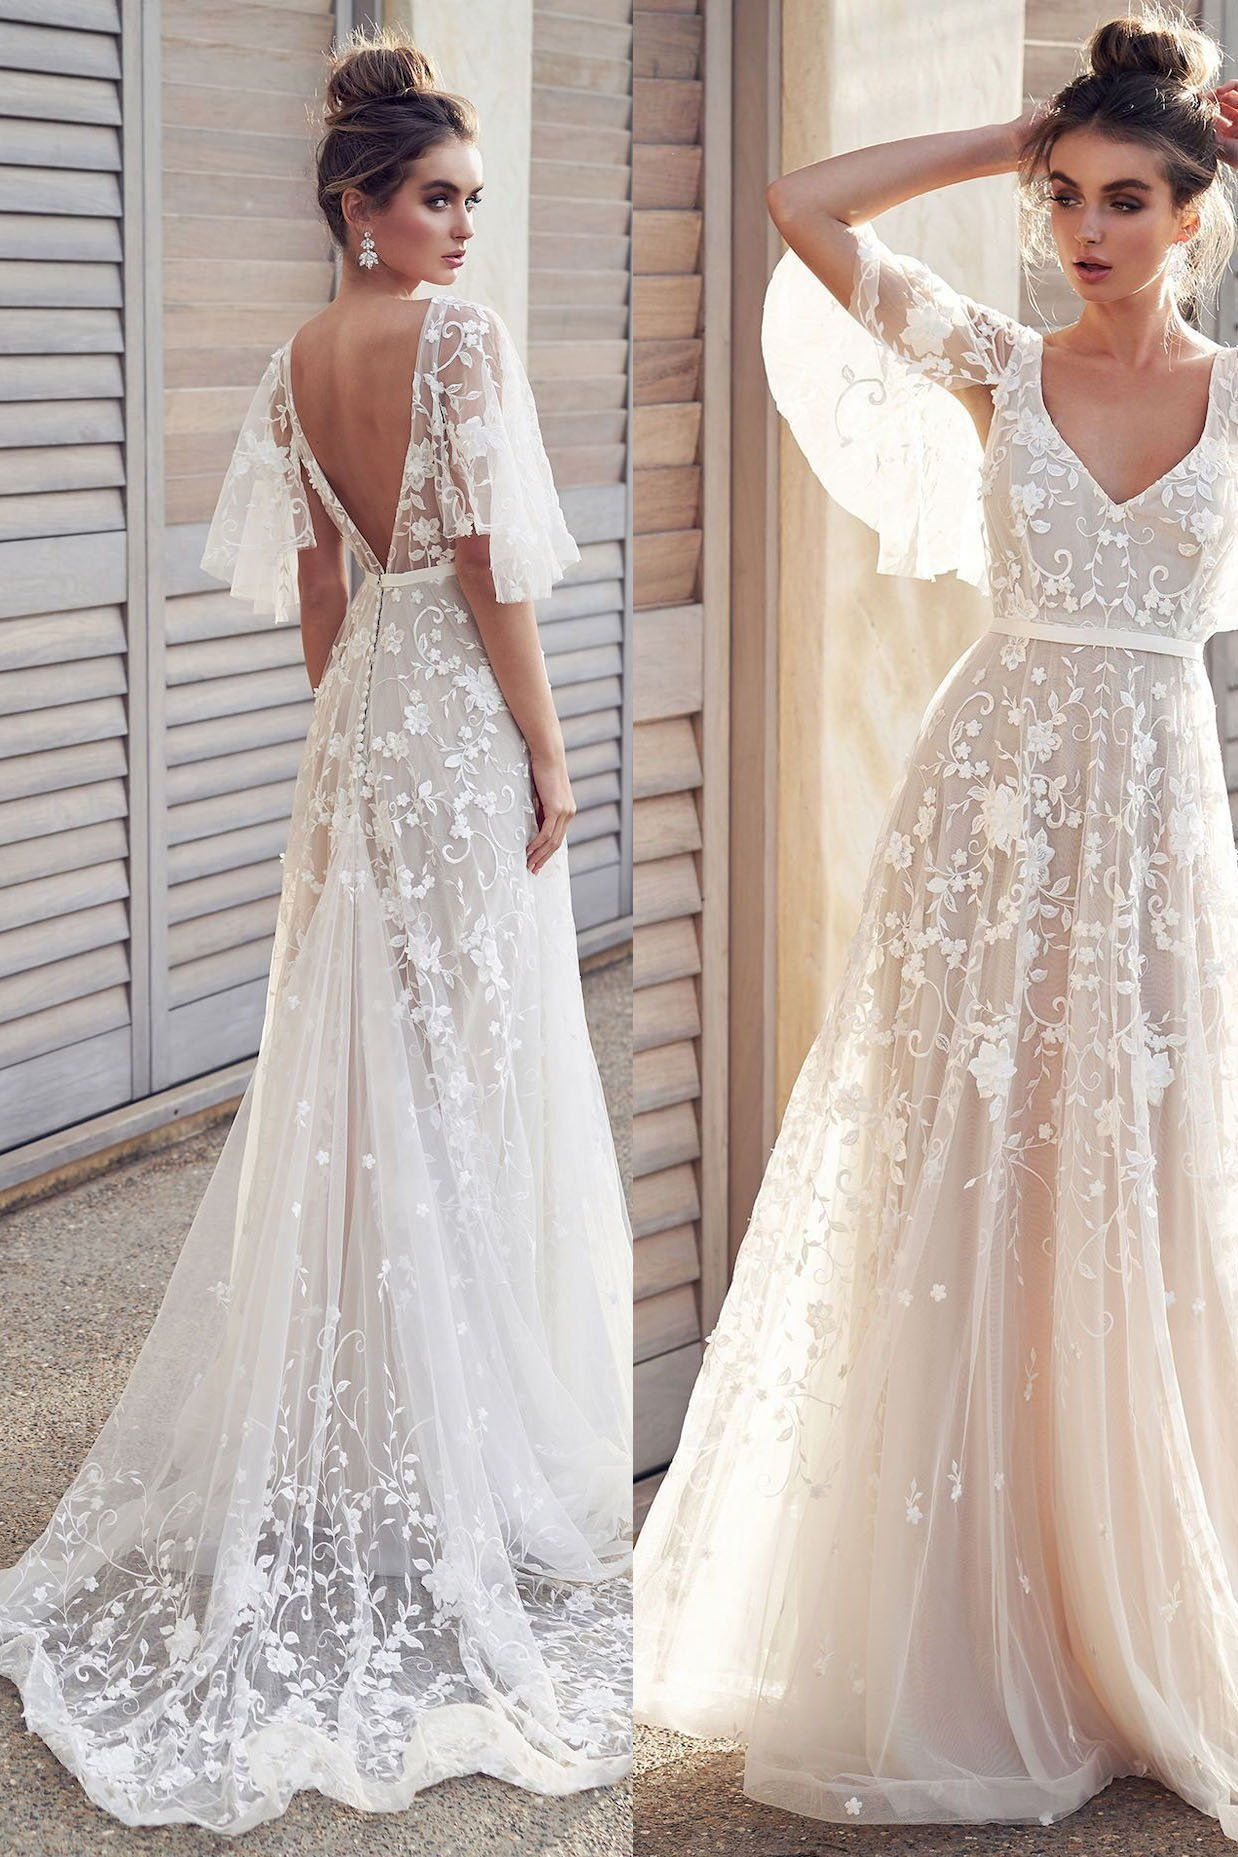 Ivory V Neck Beach Wedding Dresses with Lace Appliques, Romantic Backless Bridal Dresses HOM11903 -   - #2015WeddingDresses #AlineWeddingDresses #Appliques #Backless #BallGownWedding #Beach #BeachWeddingDresses #beautifulWeddingDresses #Bridal #BridalCollection #celebrityWeddingDresses #ChiffonWeddingDresses #coloredWeddingDresses #countryWeddingDresses #DavidTutera #designerWeddingDresses #dreamWeddingDresses #Dresses #EmpireWeddingDresses #fallWeddingDresses #HOM11903 #Ivory #Lace #LaceWeddin